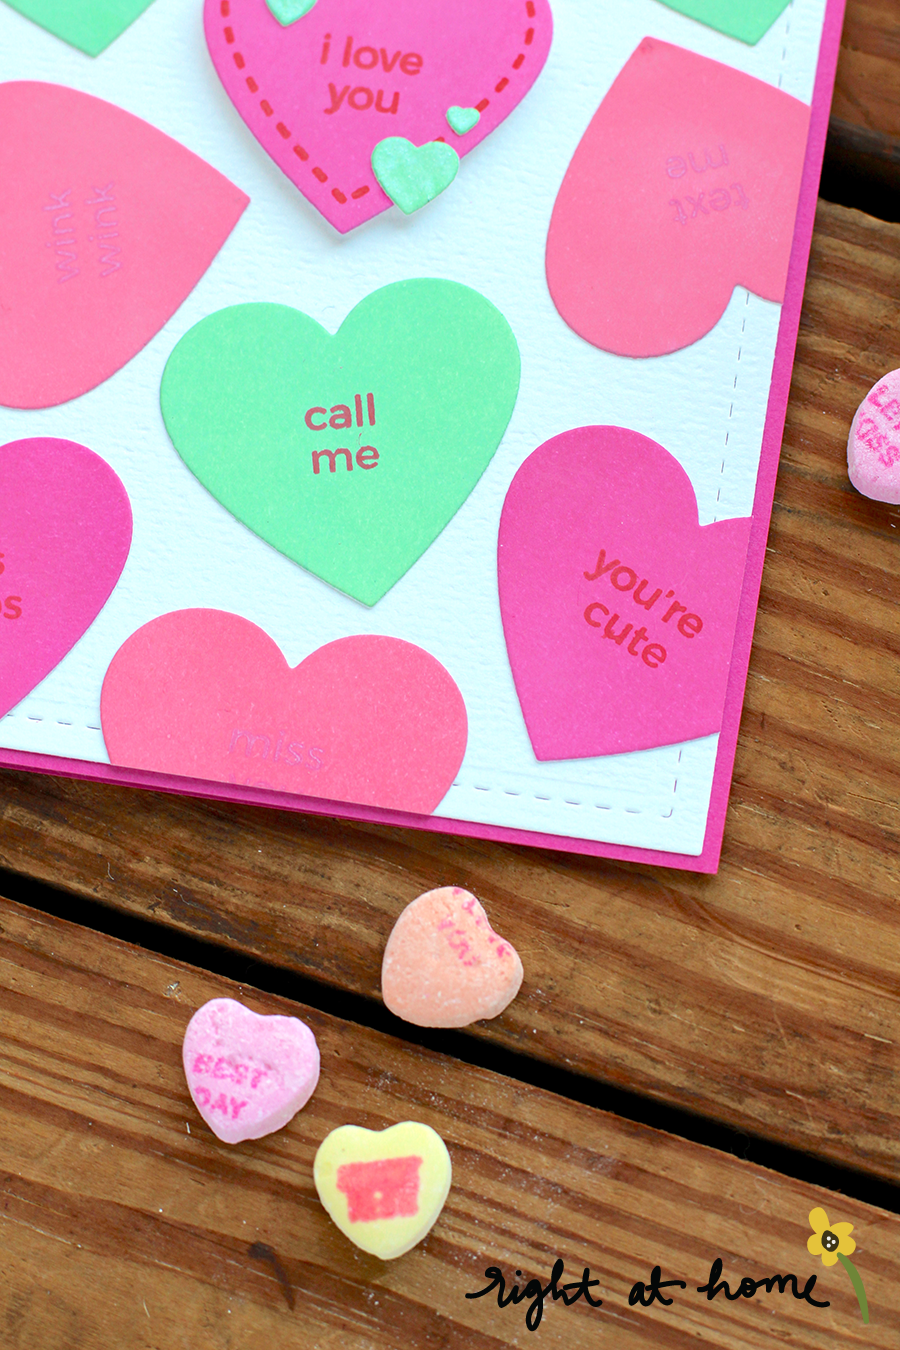 I Love You Candy Hearts Background Folded Airplane Die Set Card // rightathomeshop.com/blog